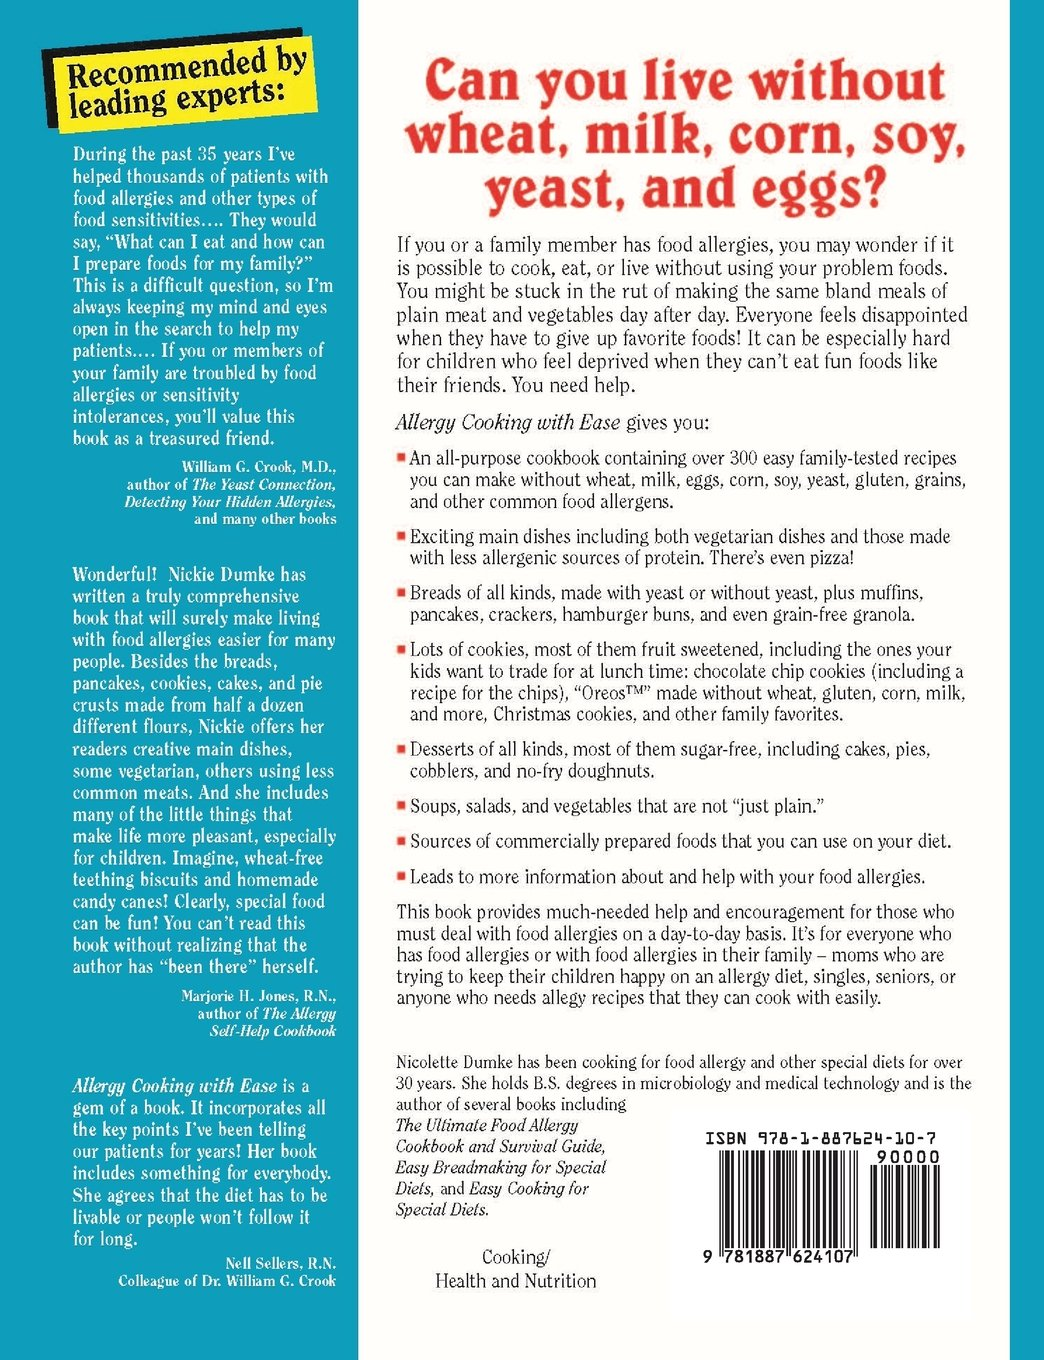 Allergy Cooking with Ease: The No Wheat, Milk, Eggs, Corn, and Soy ...